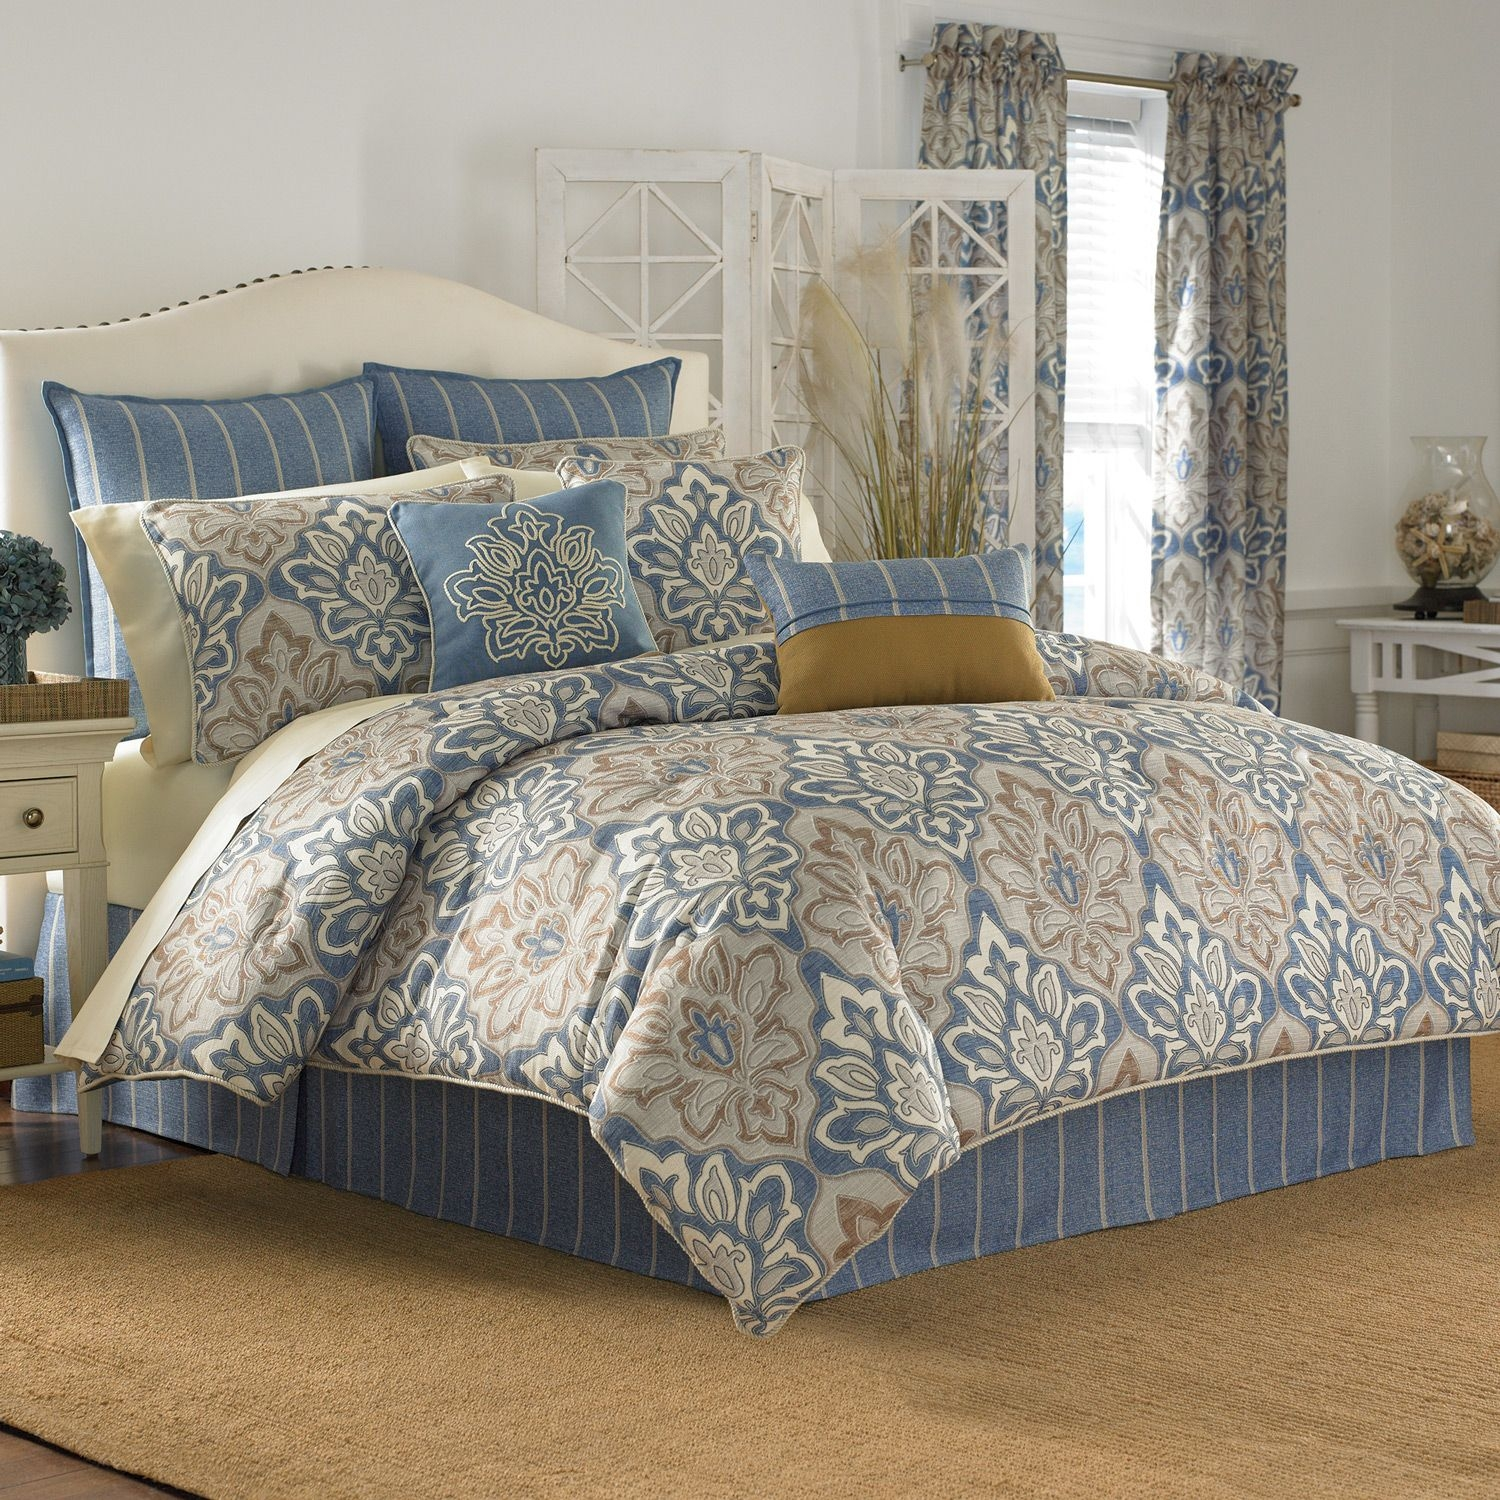 Cal King Bedding Sets has one of the best kind of other is Croscill Captain39s Quarters Comforter Sets Comforter Sets - Spillo Caves